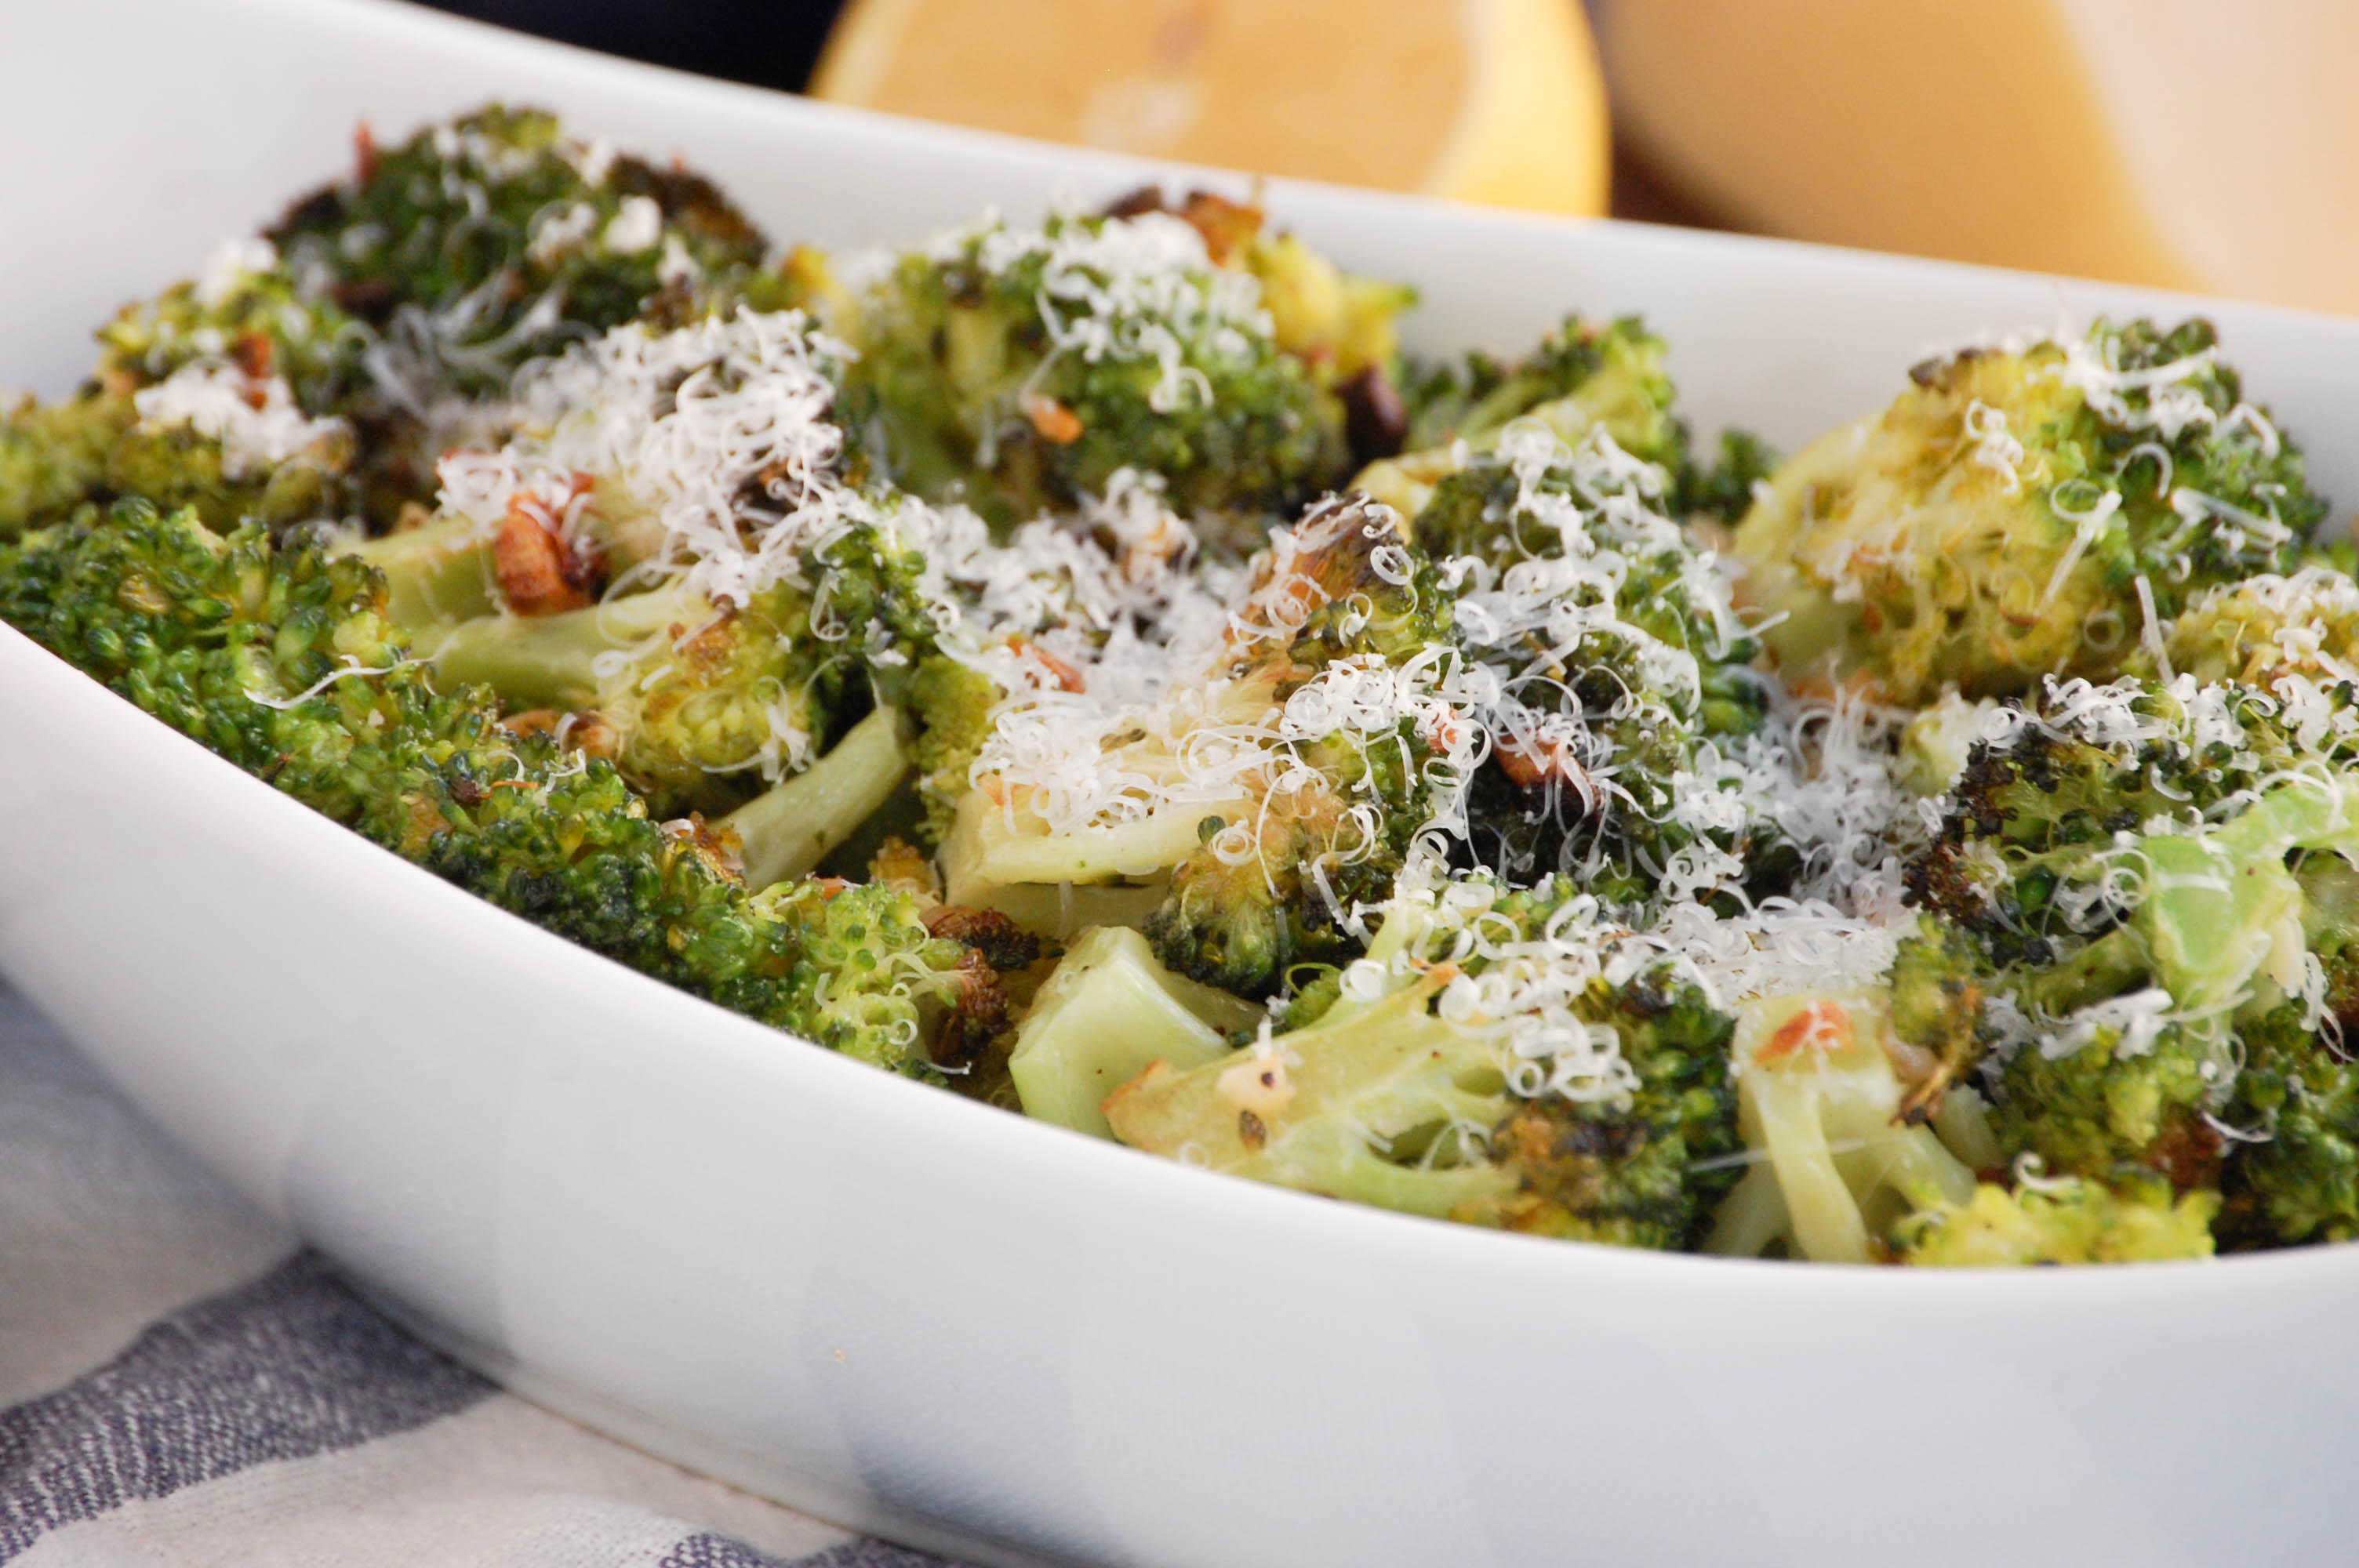 Roasted Broccoli-299